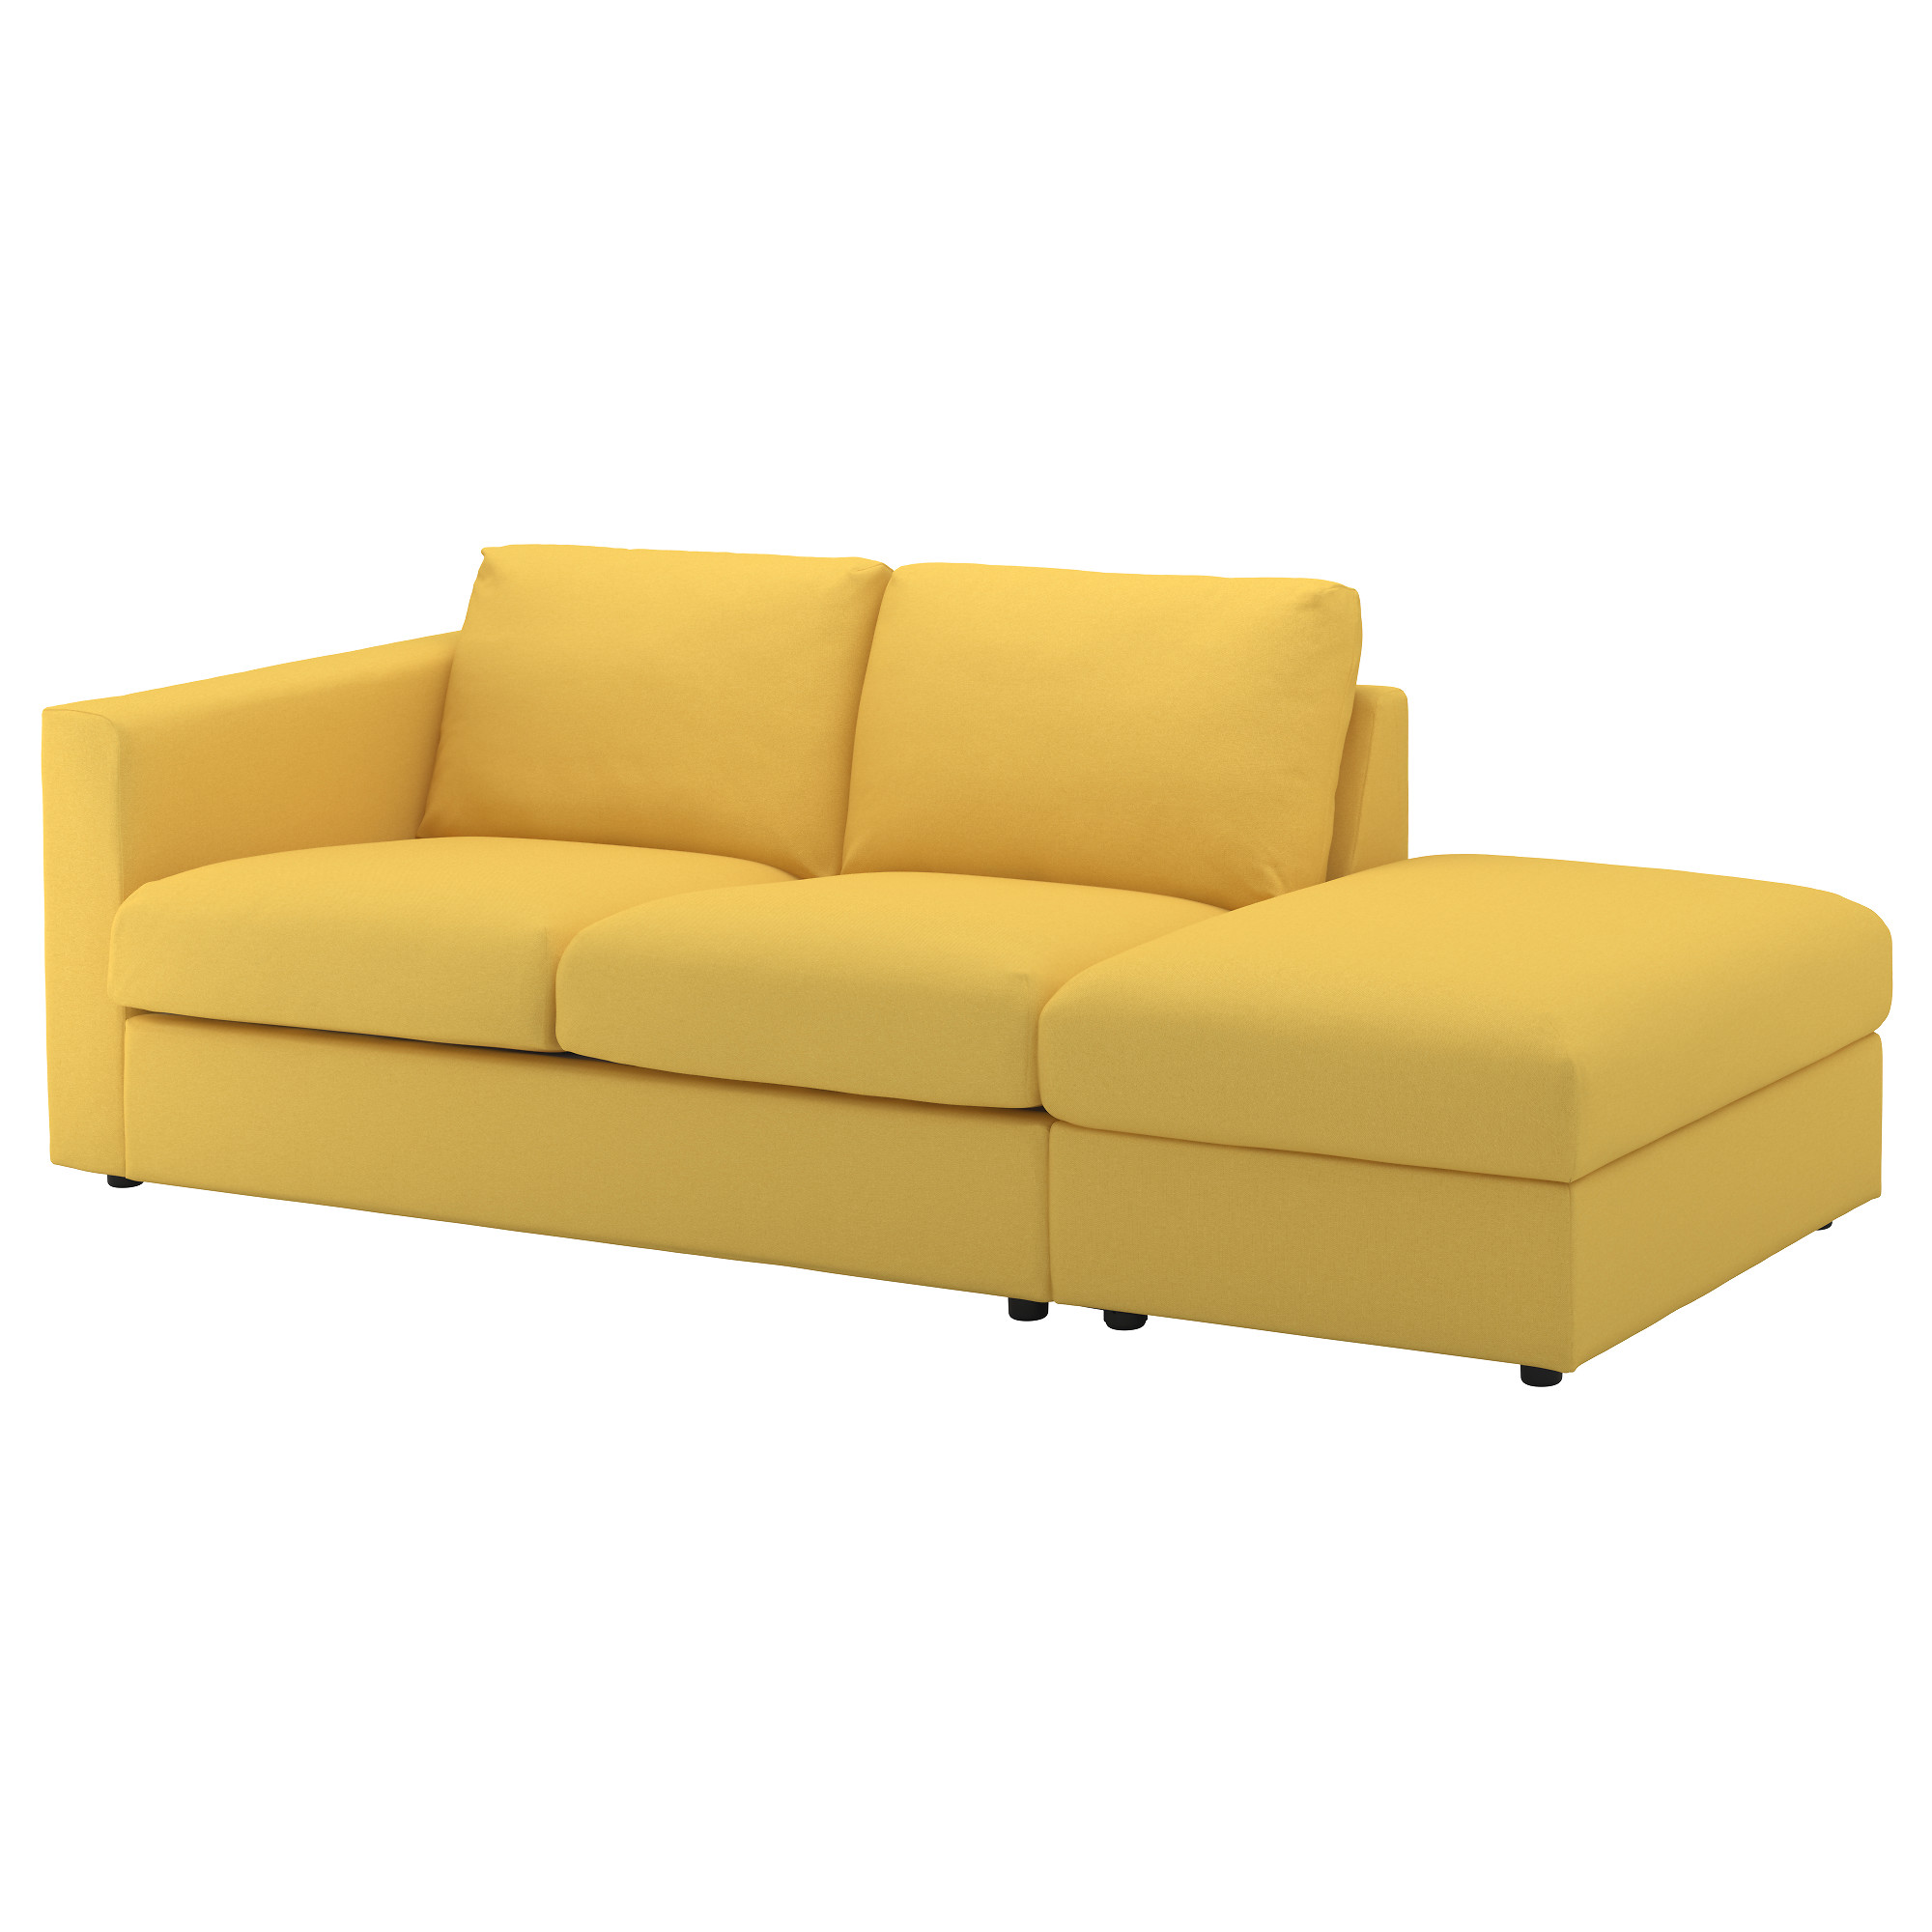 VIMLE sofa, with open end, Orrsta golden-yellow Height including back  cushions: